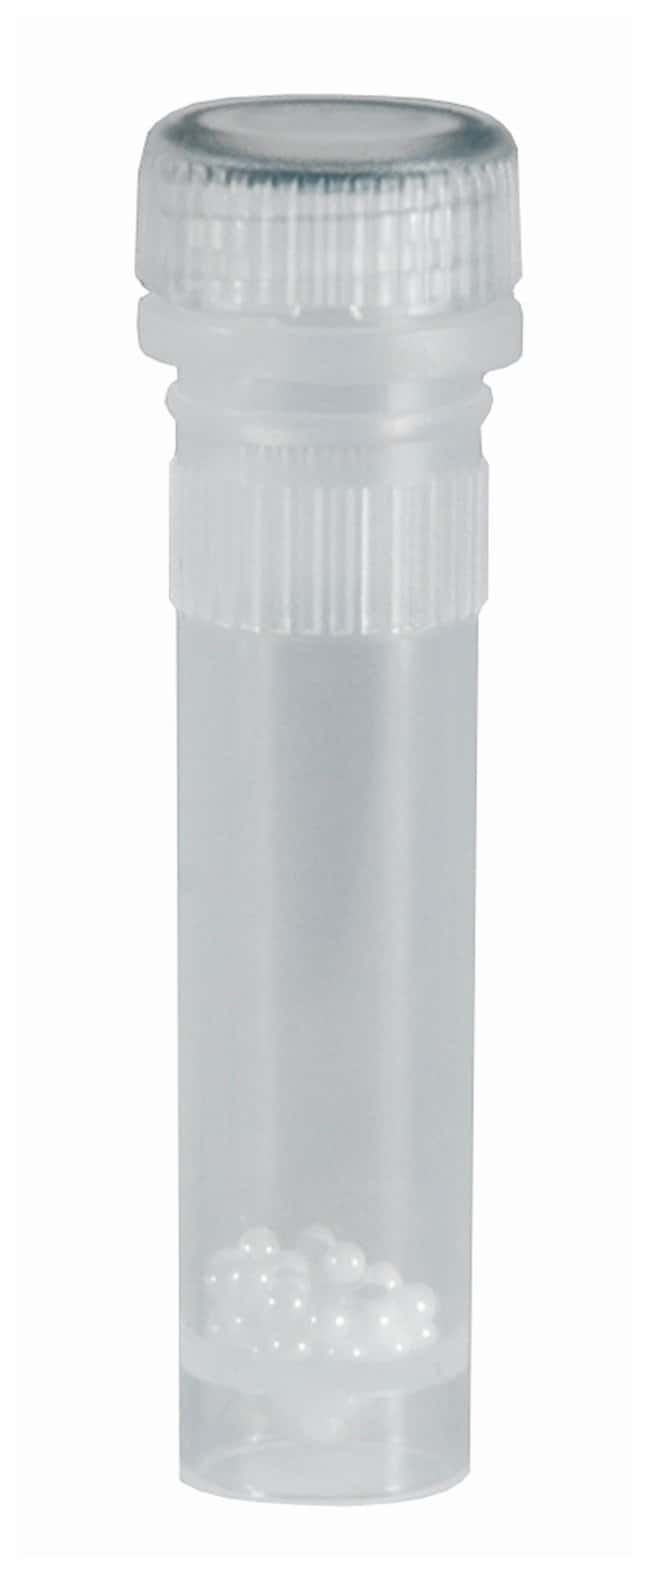 Fisherbrand™ Pre-Filled Bead Mill Tubes 2mL Soft Tissue Homogenizing Mix Tubes Fisherbrand™ Pre-Filled Bead Mill Tubes